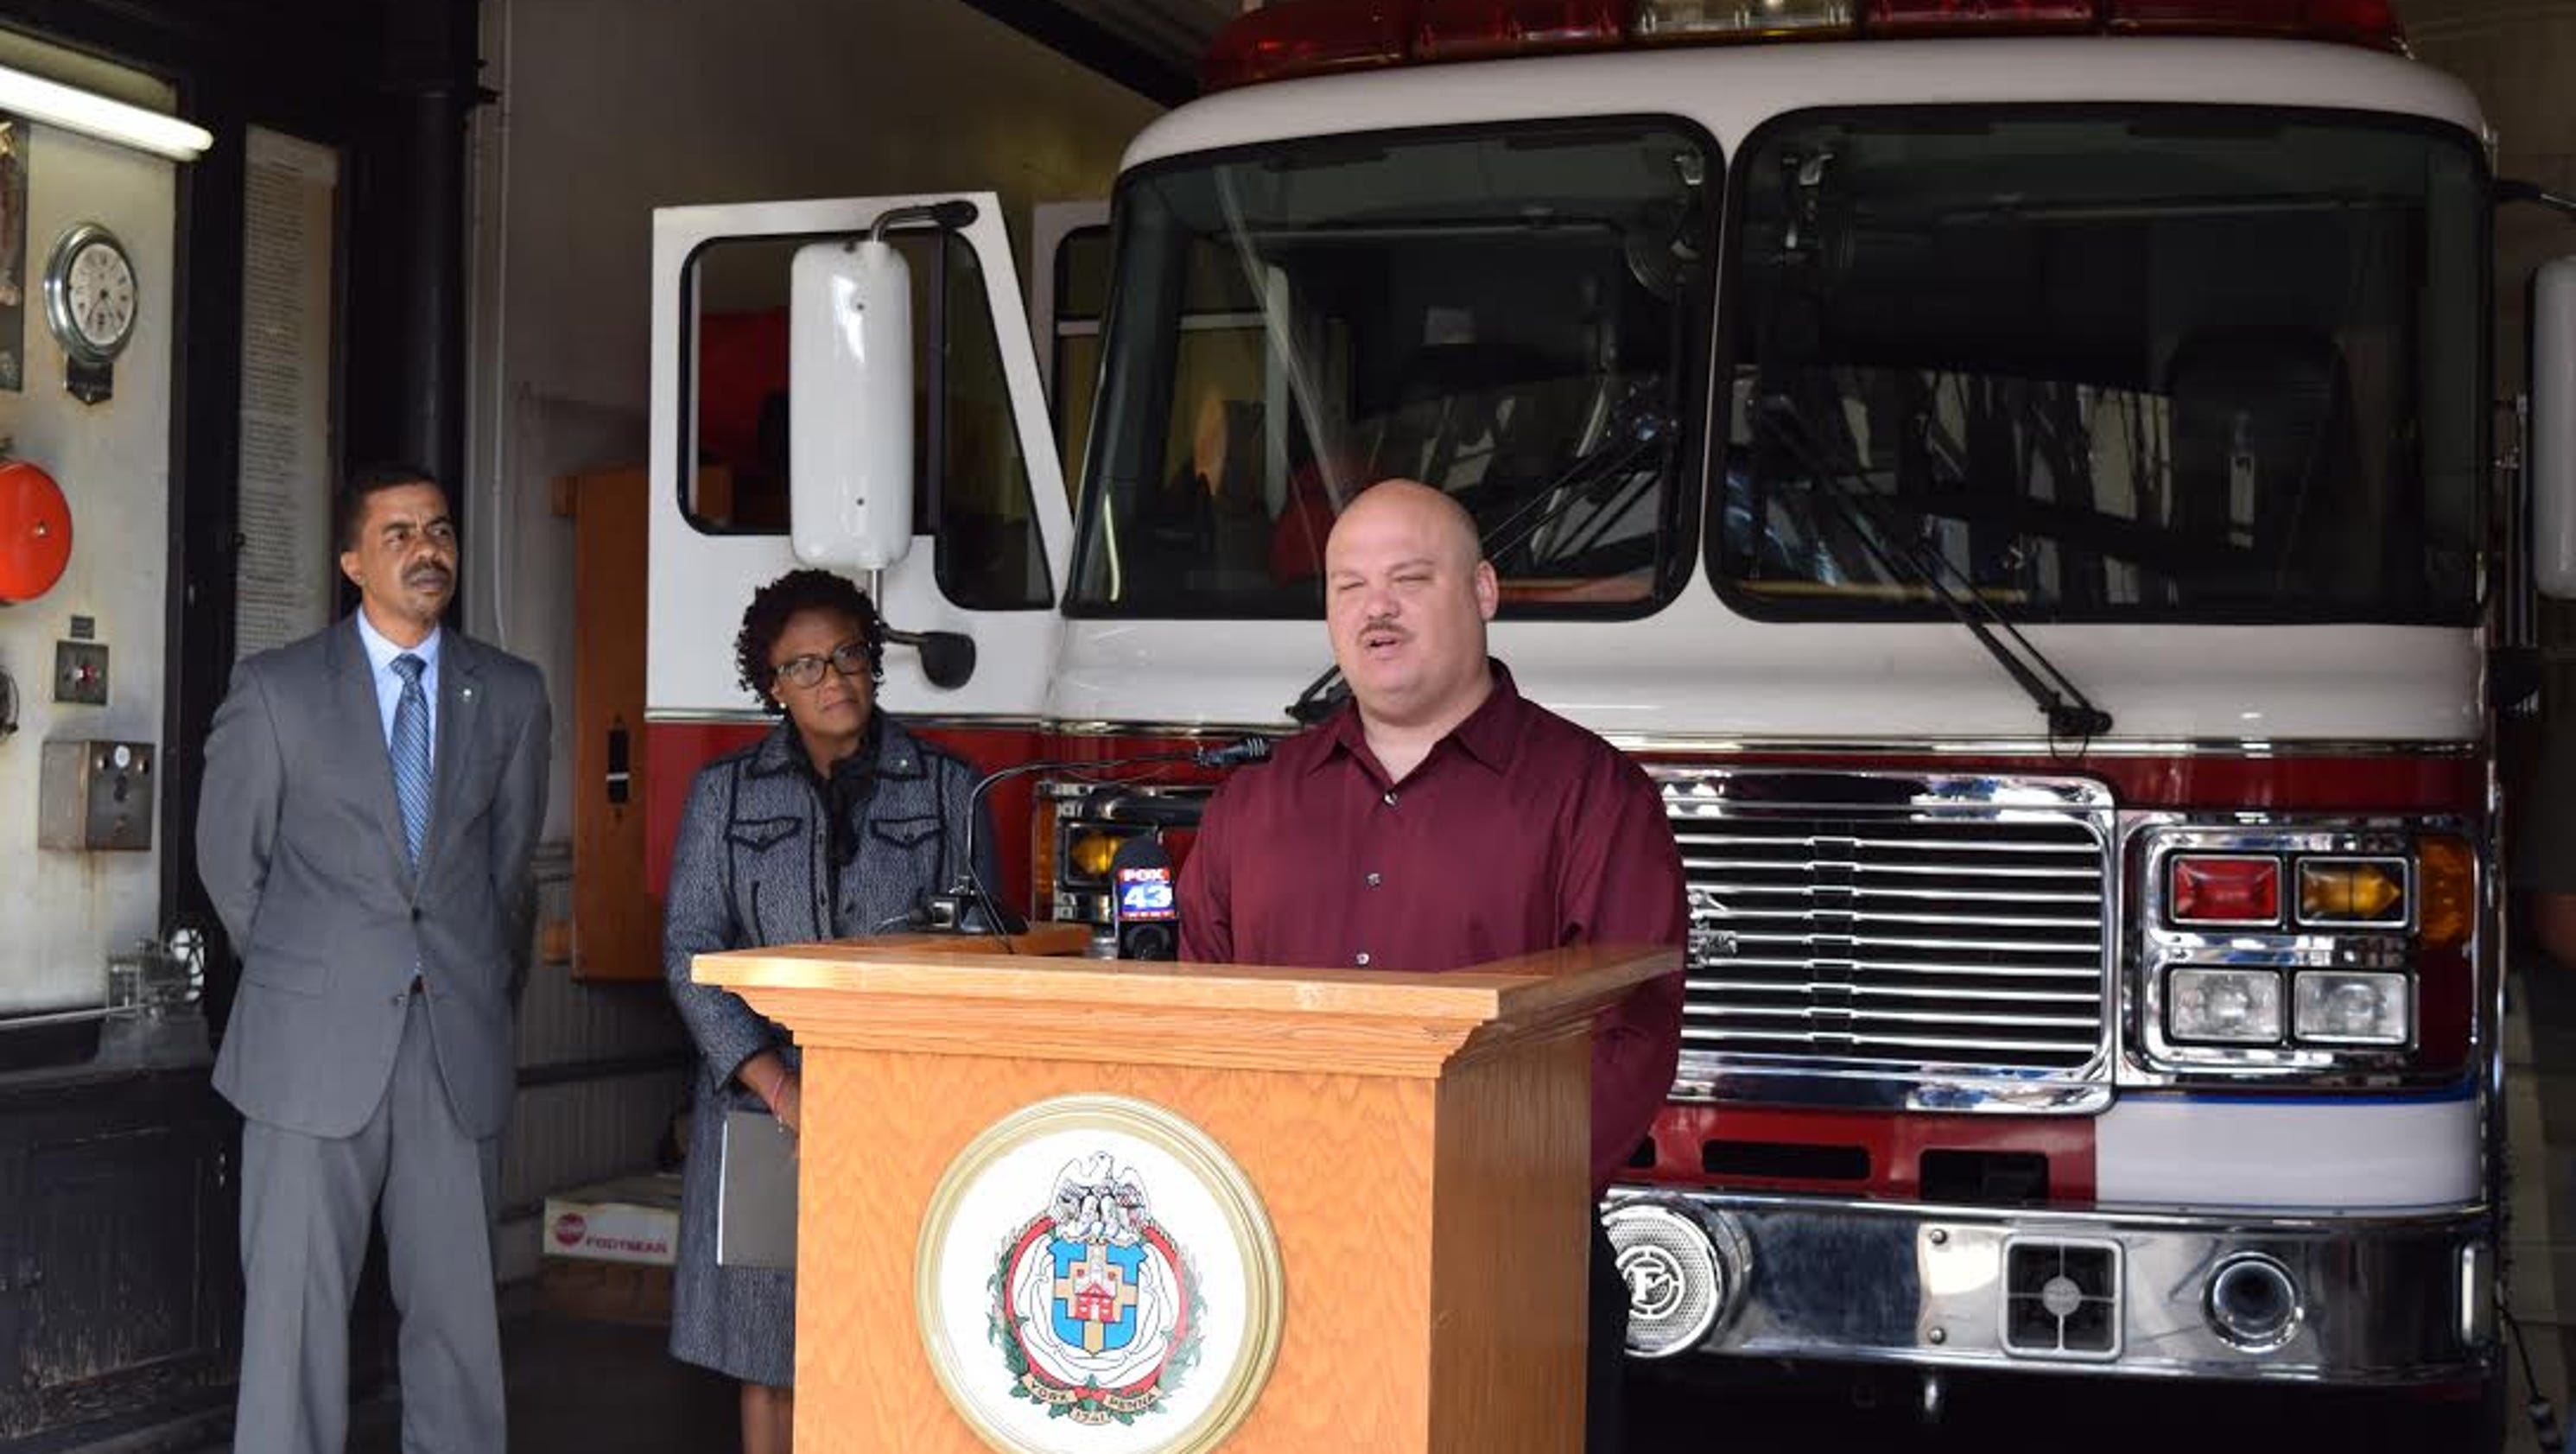 York City, firefighters strike deal on five-year contract